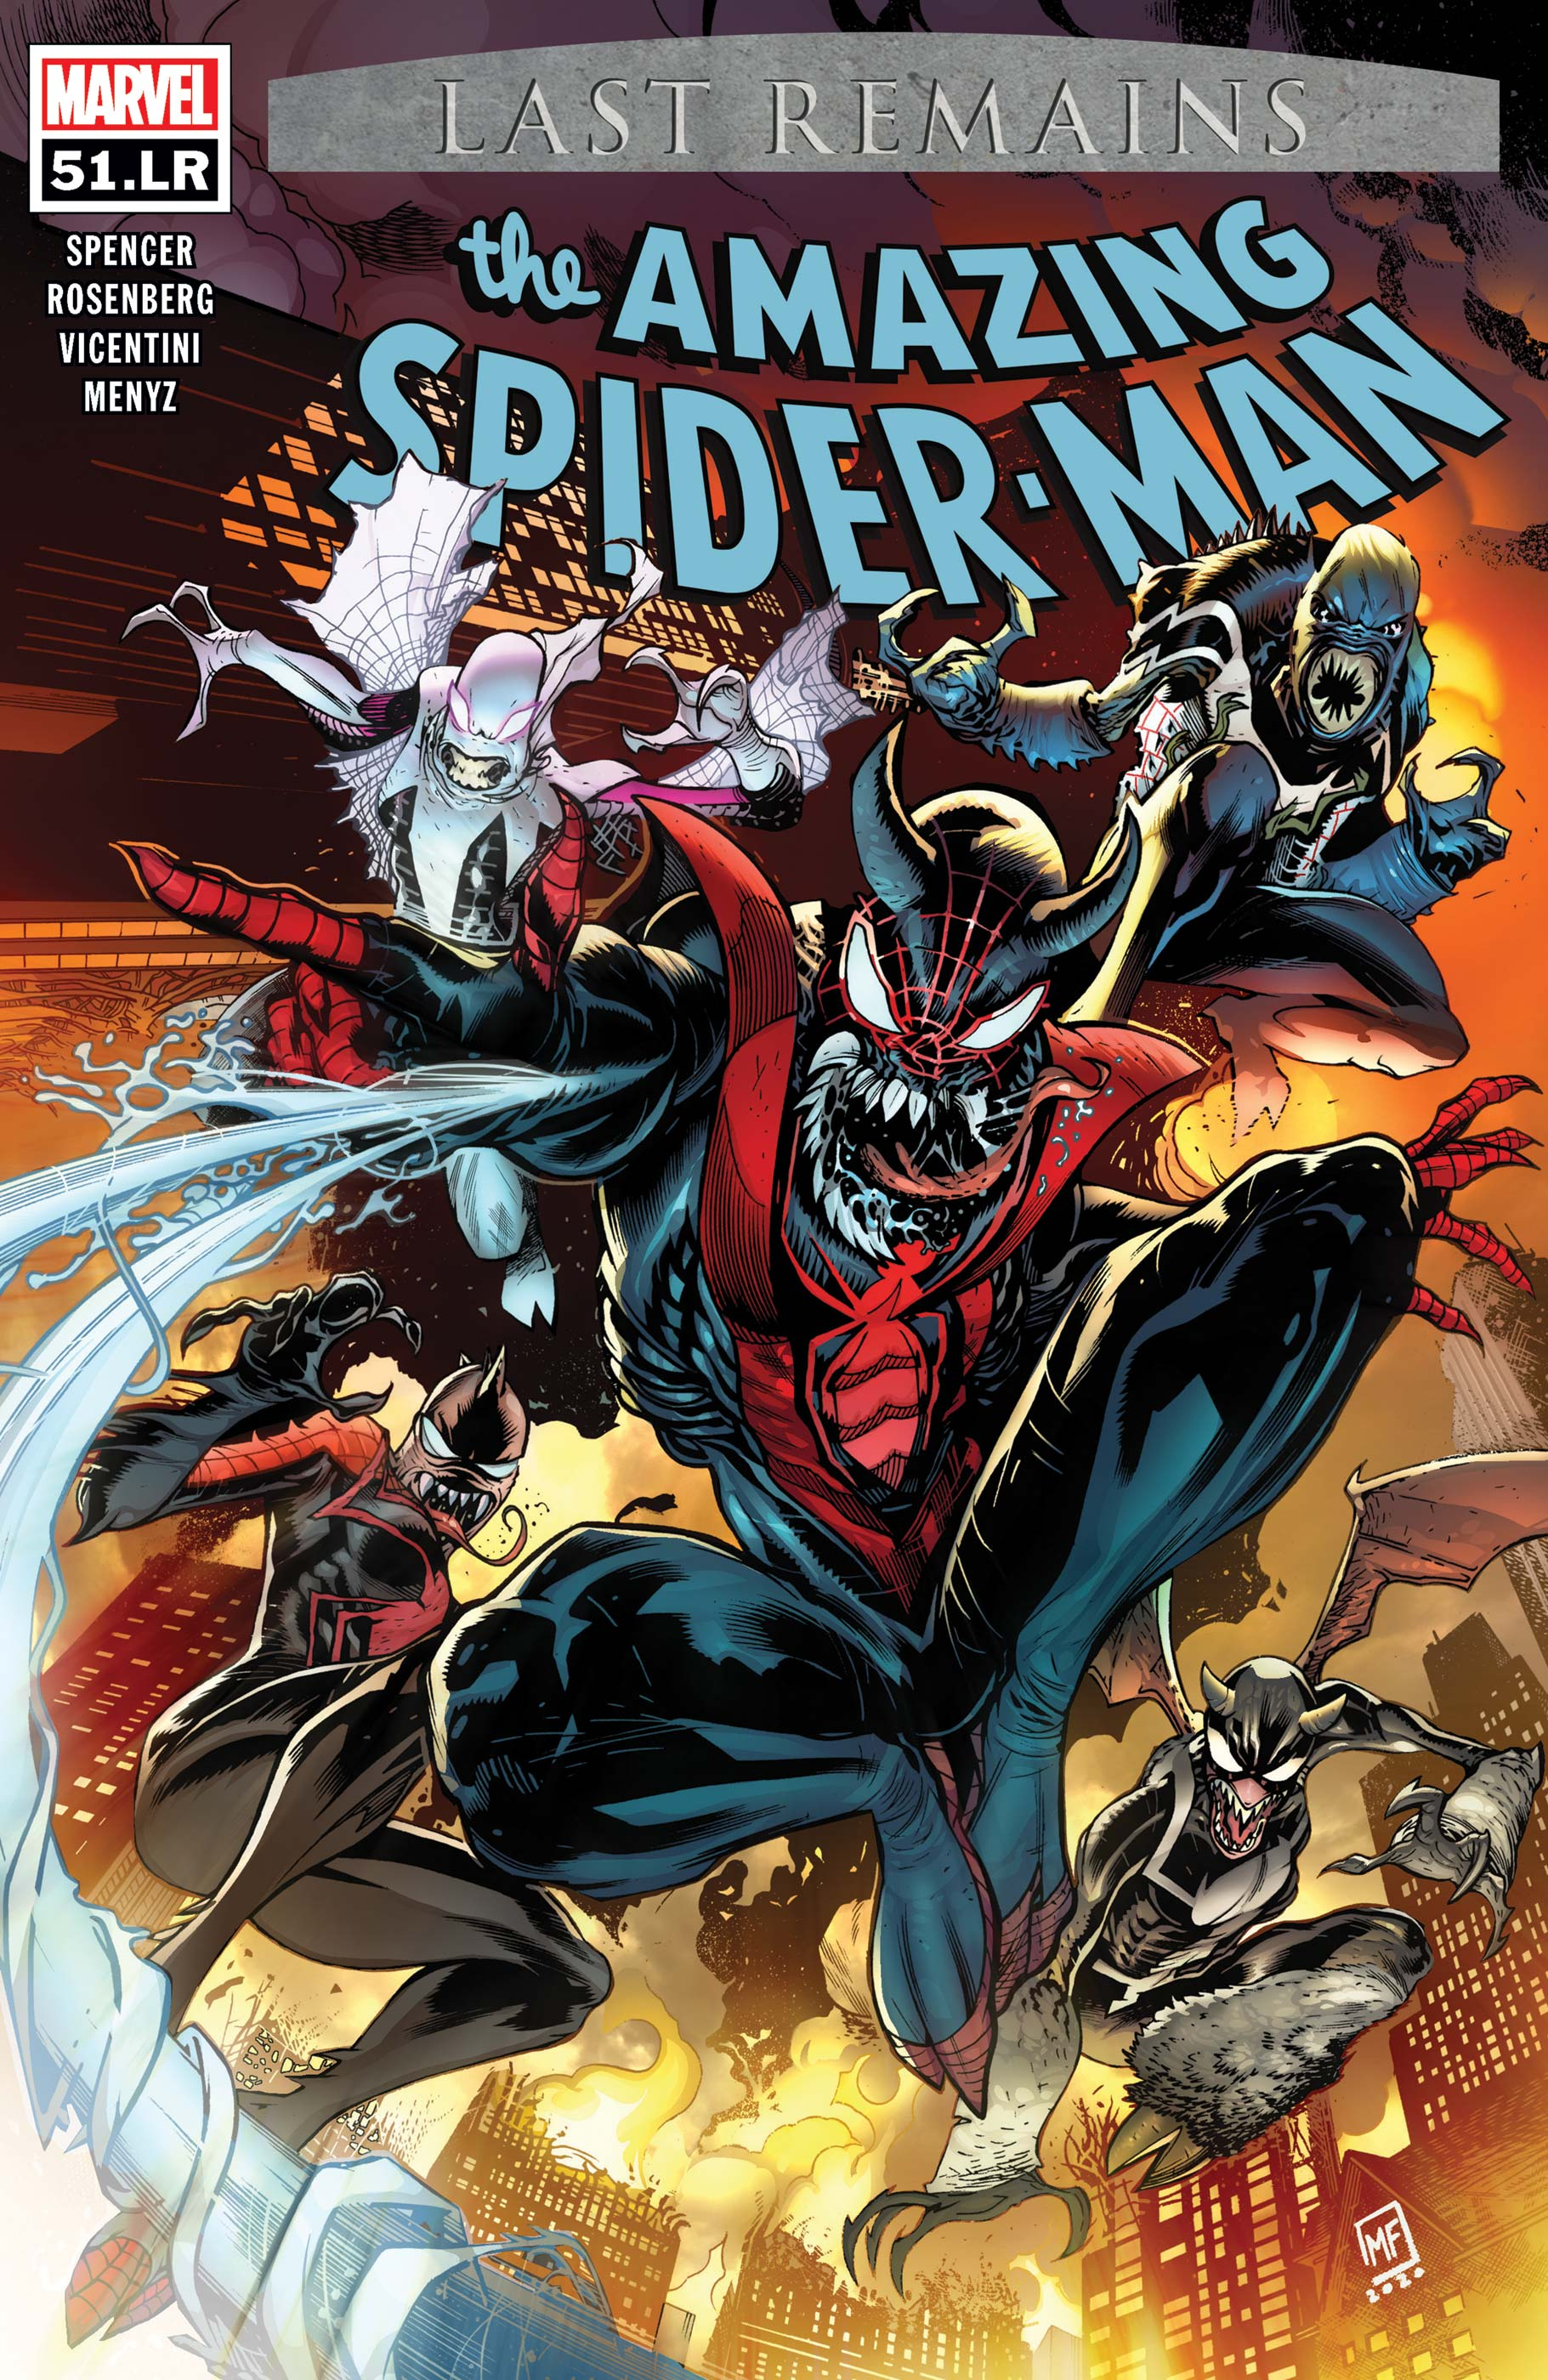 The Amazing Spider-Man (2018) #51.1